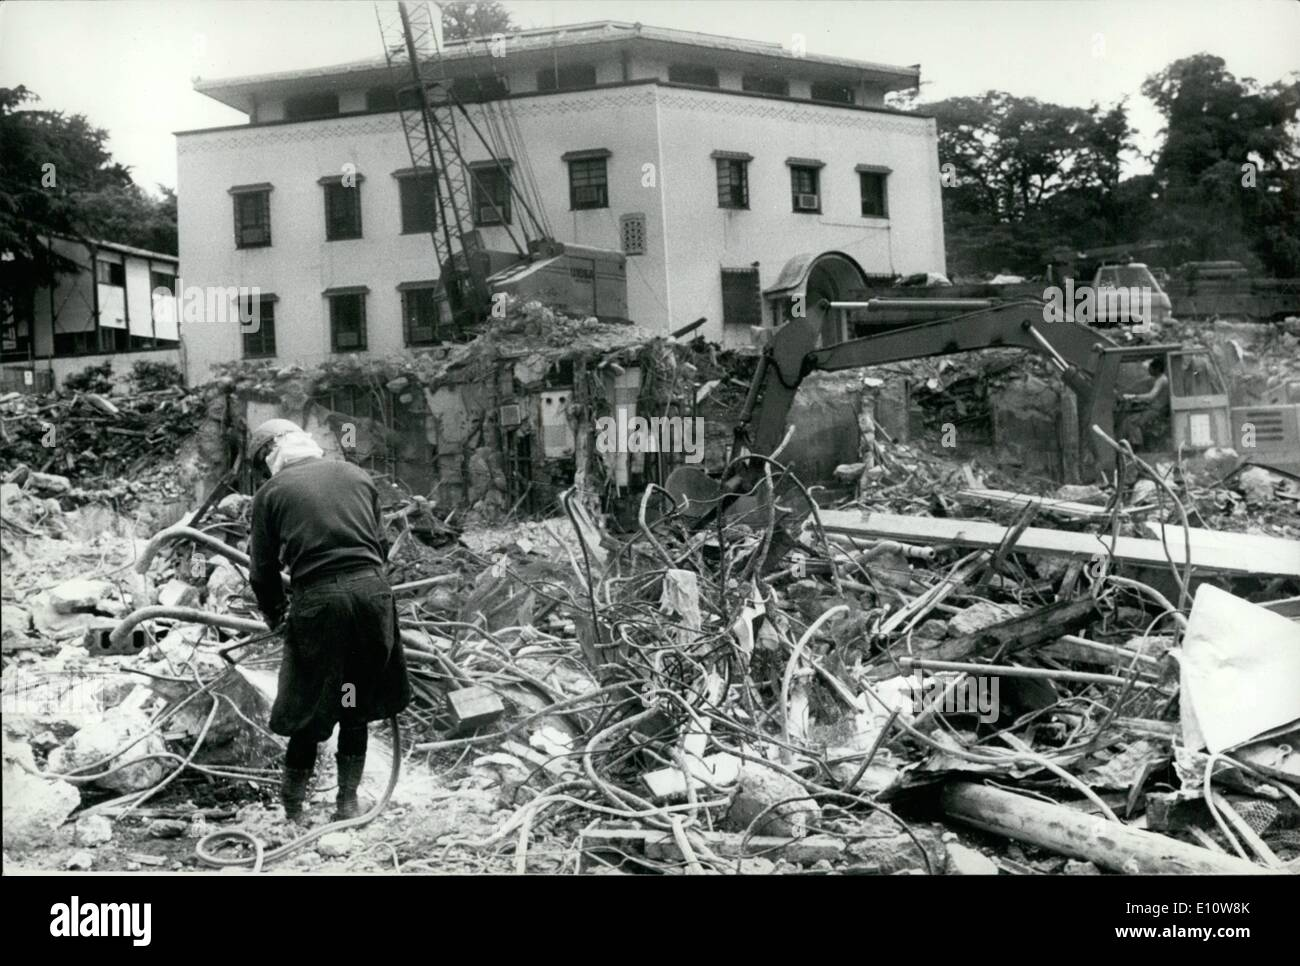 Jun. 06, 1974 - ''Hoover's Folly'' in Tokyo demolished. The U.S.. Embassy in Tokyo, which was named ''Hoover's folly'' when critics charged that the exorbitant sum of -million was squanders on it by the late president Herbert hoover during the ''Great depression'' in 1931, is being demolished to make way for a glass paneled new American embassy. The old embassy was designed by Antonin Raymond. a disciple of Frank Lloyd wright, and was referred to as an edifice of mixed architectural blood. The new embassy has been designed by crease pelli of green associates in los angeles. U.S.A - Stock Image